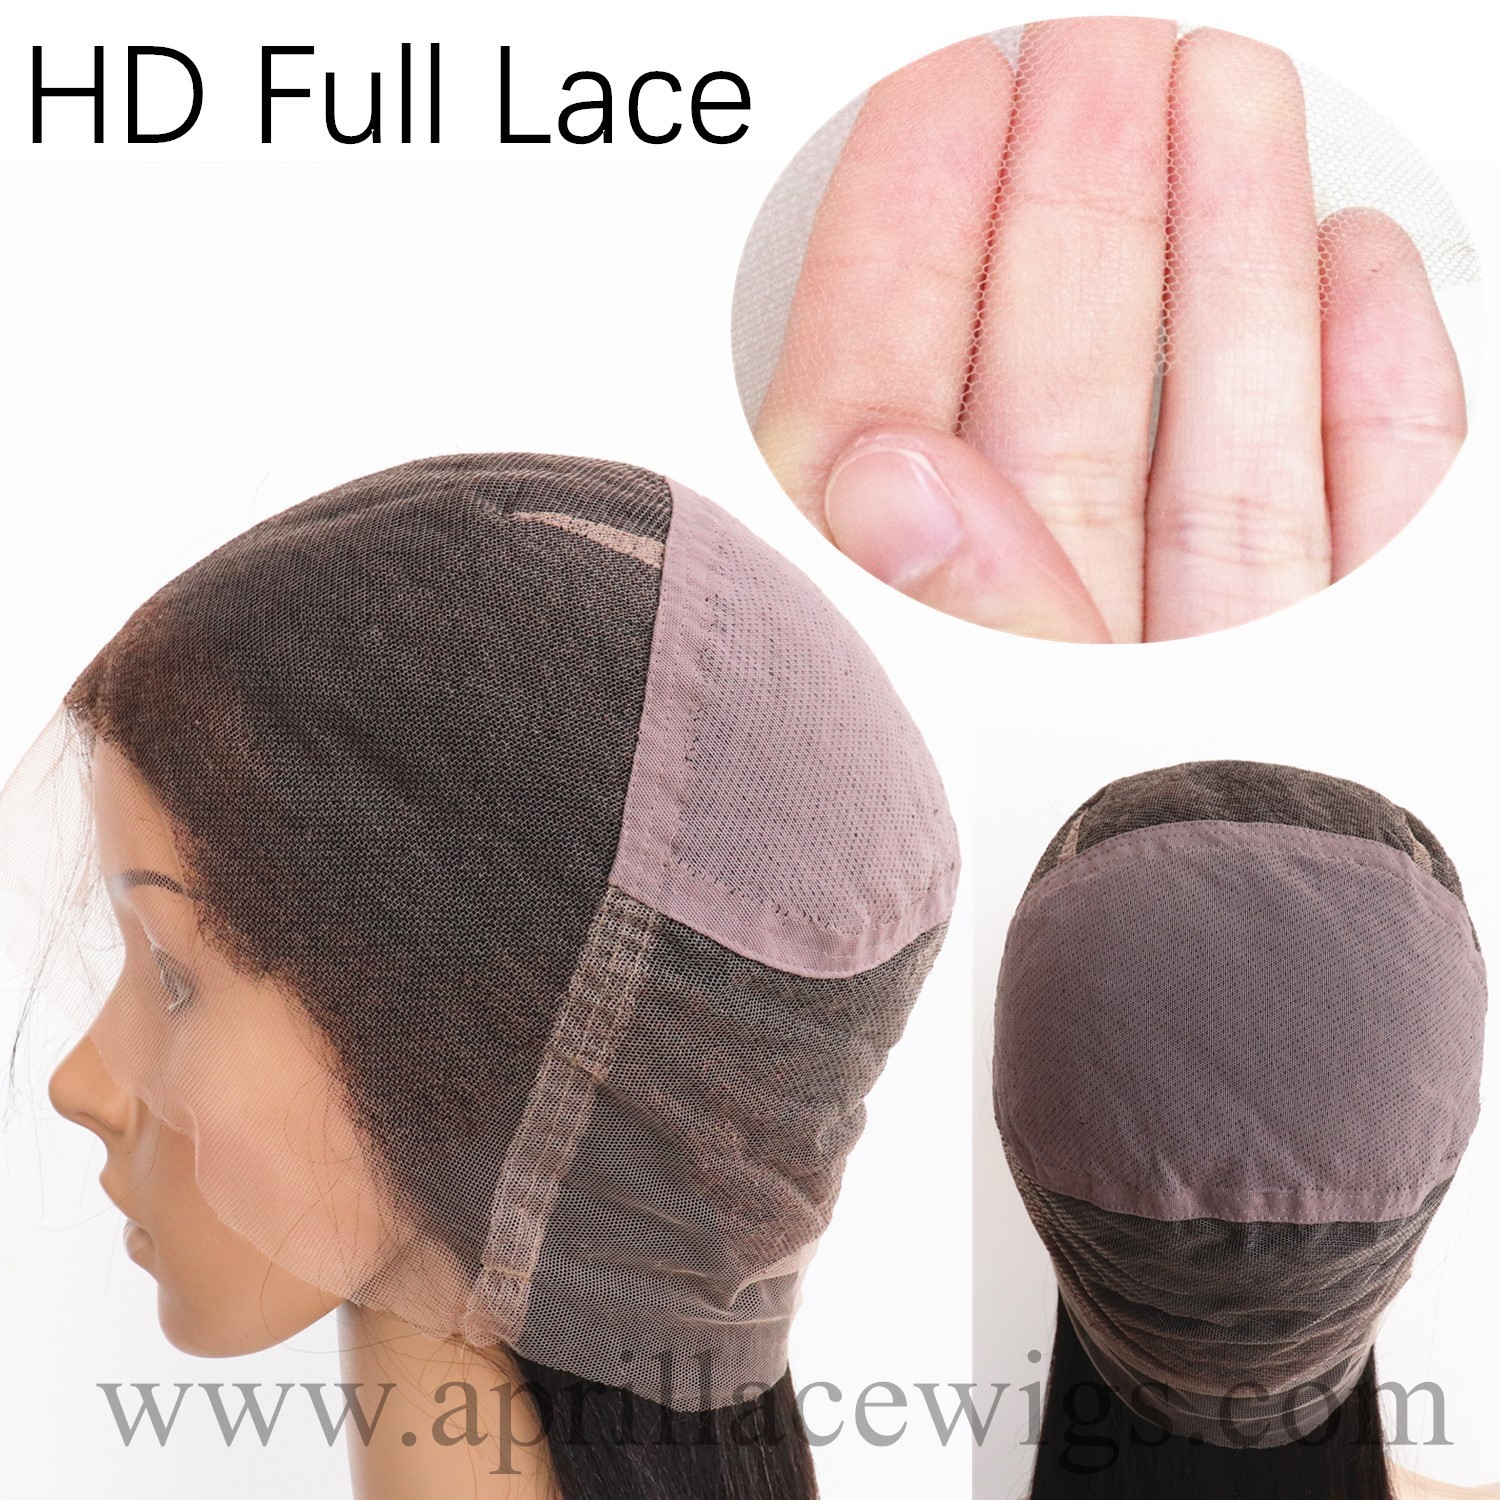 HD thin lace full lace wig cap